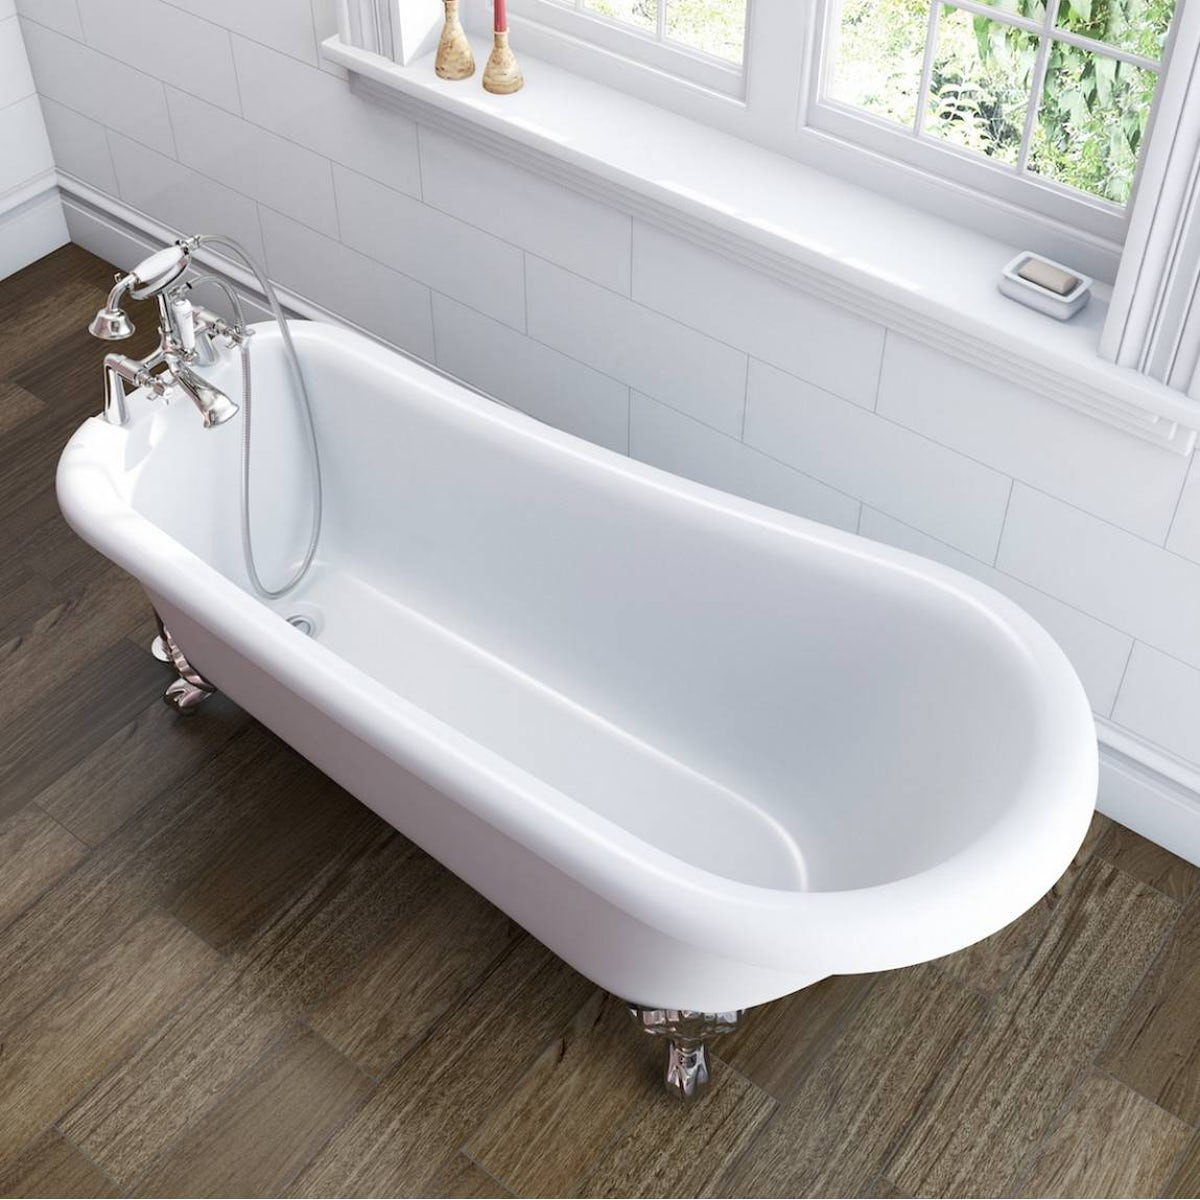 Winchester single ended slipper bath small special offer for Small baths 1200